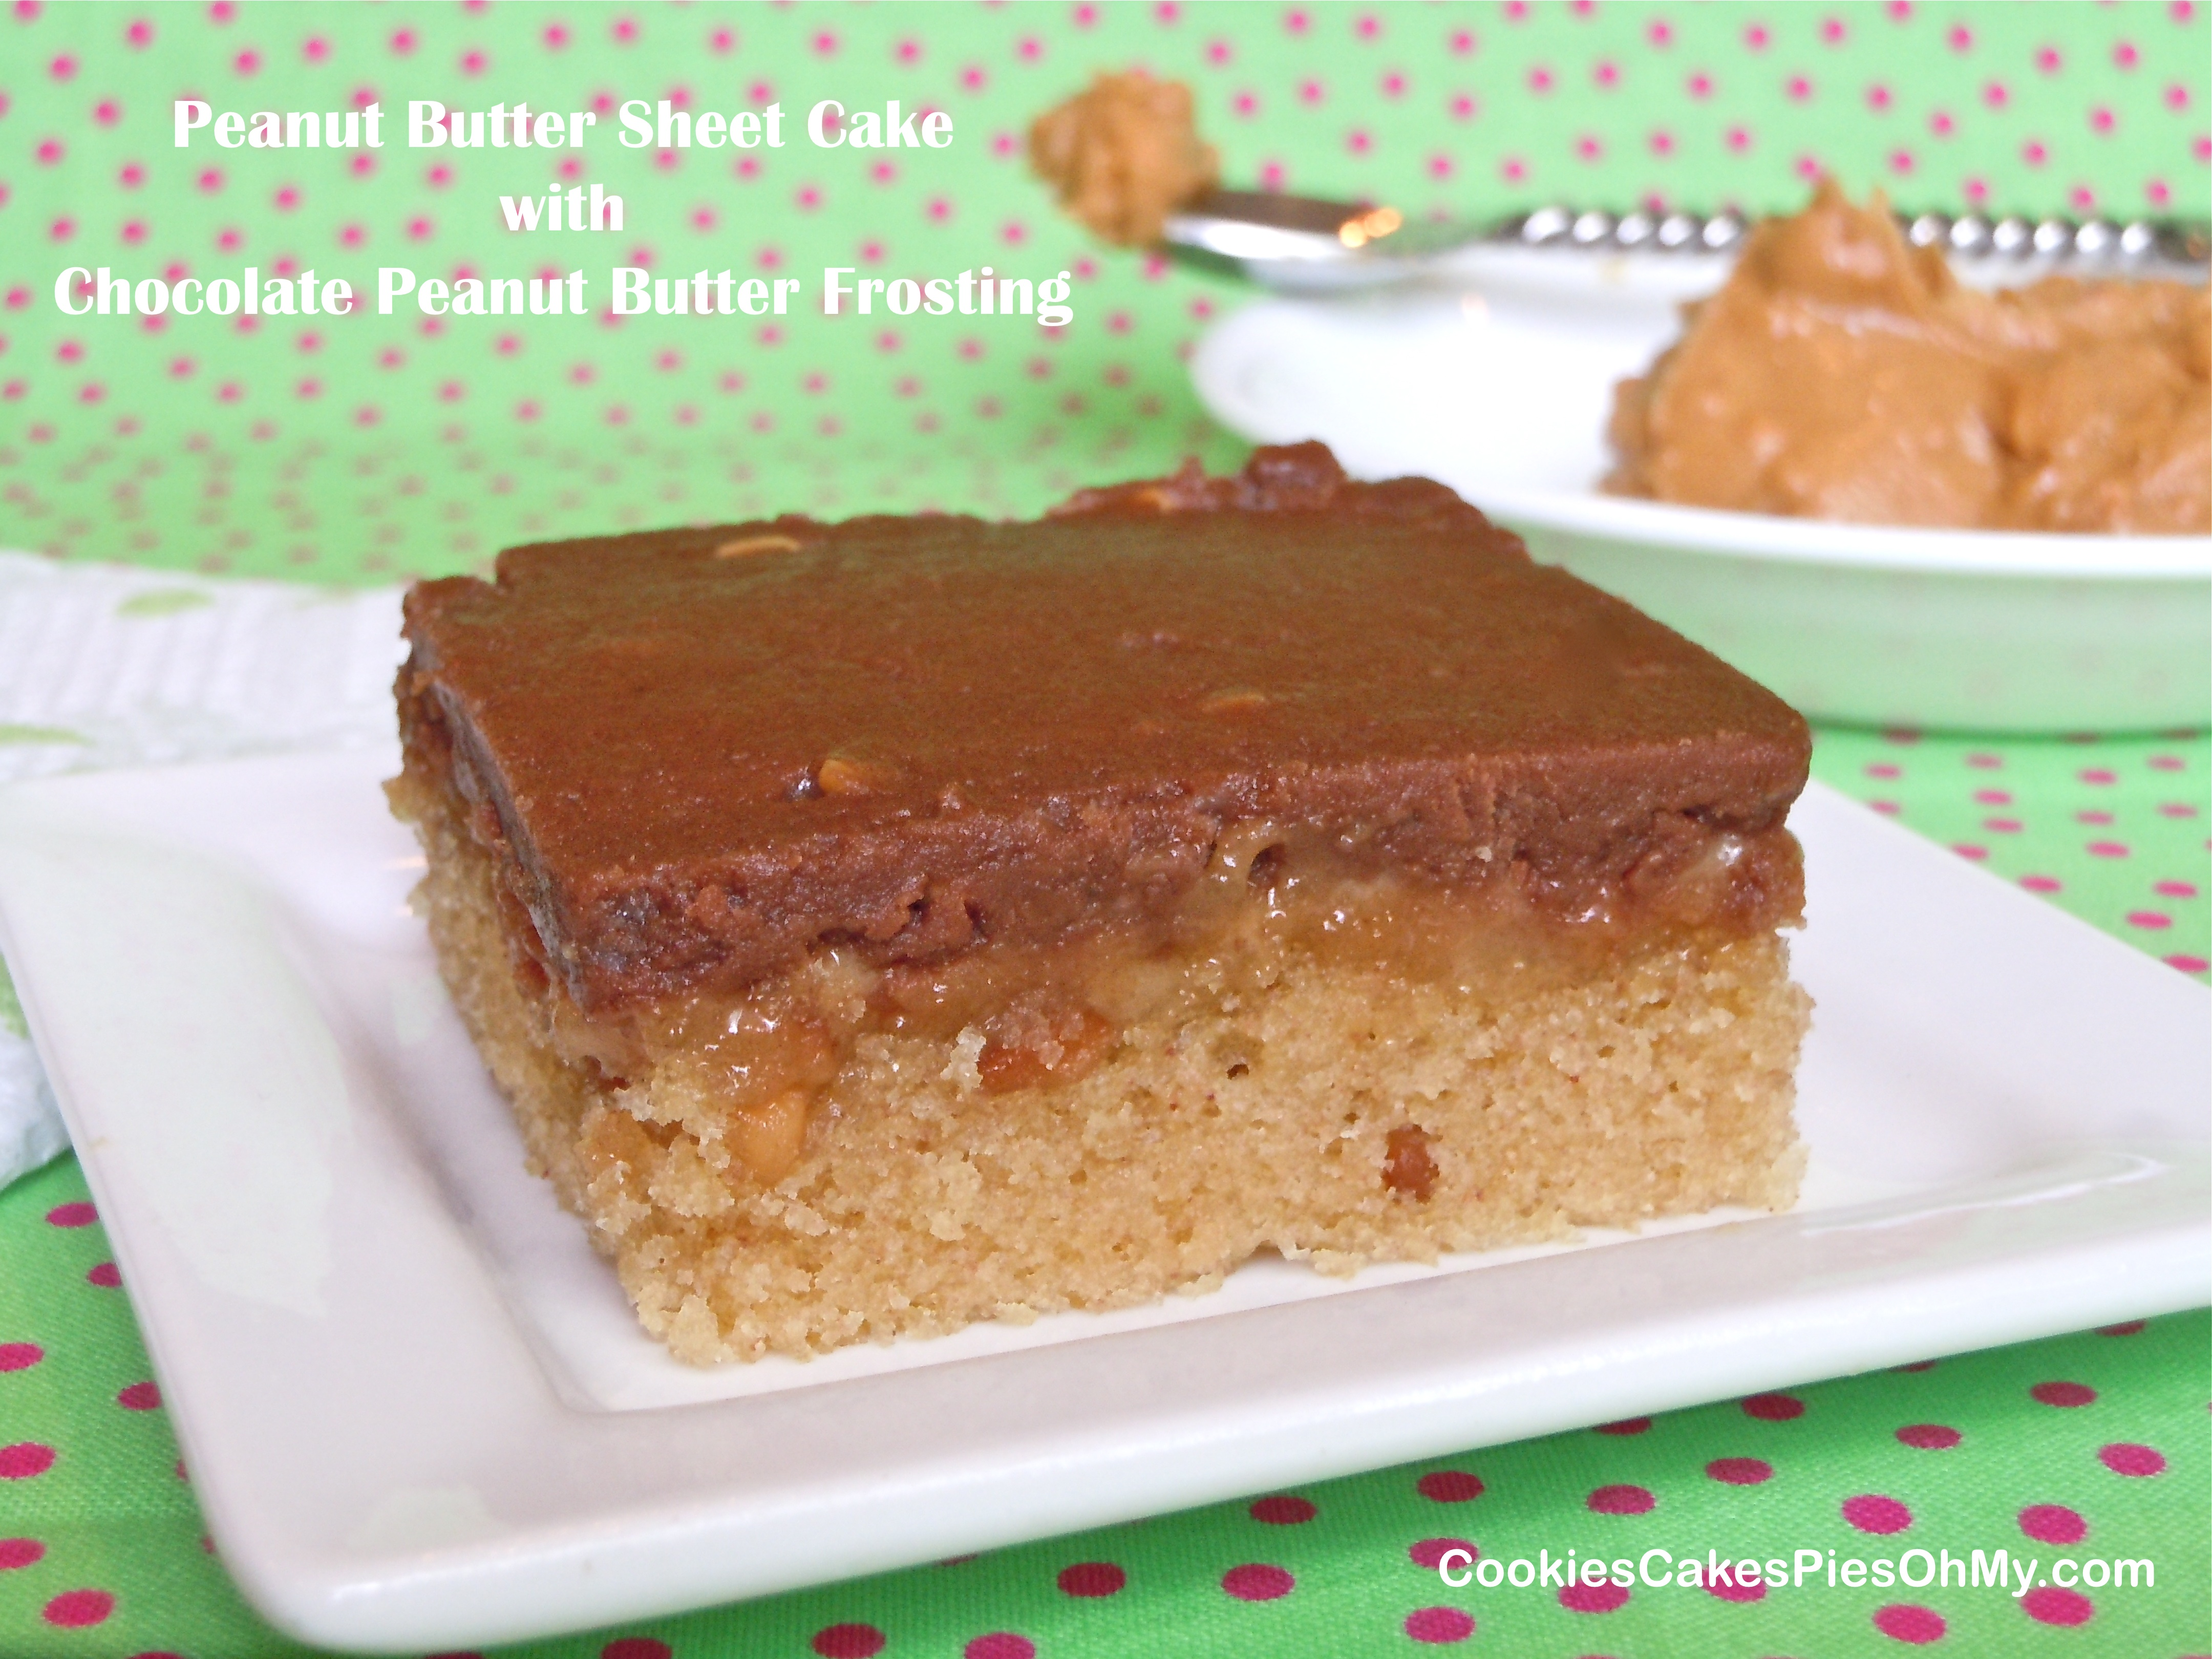 Peanut Butter Sheet Cake with Chocolate Peanut Butter Frosting ...